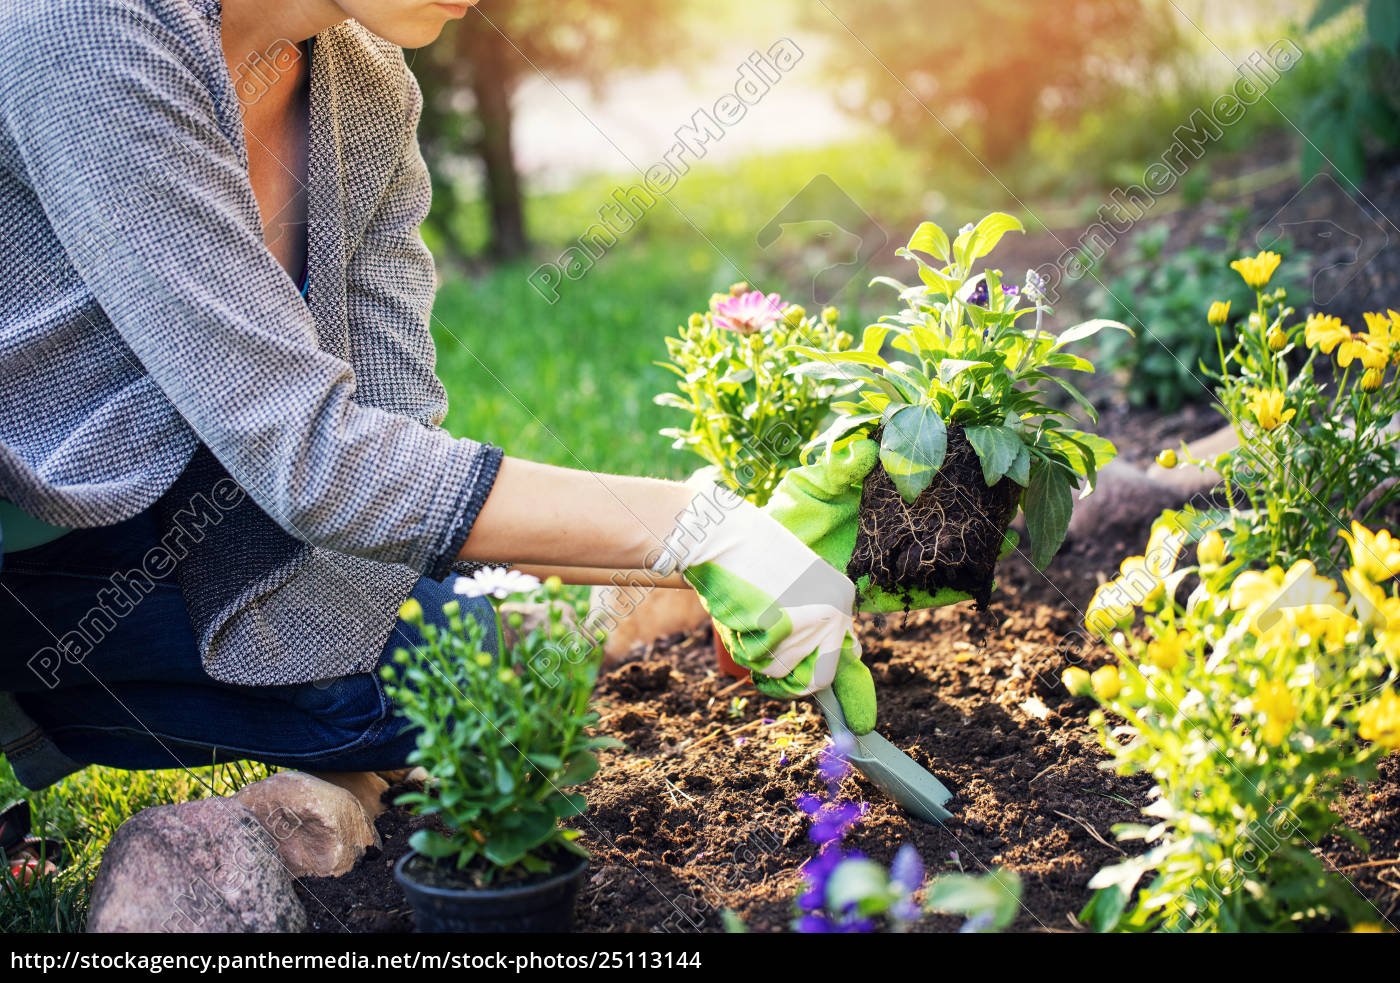 Woman Planting Summer Flowers In Home Garden Bed Royalty Free